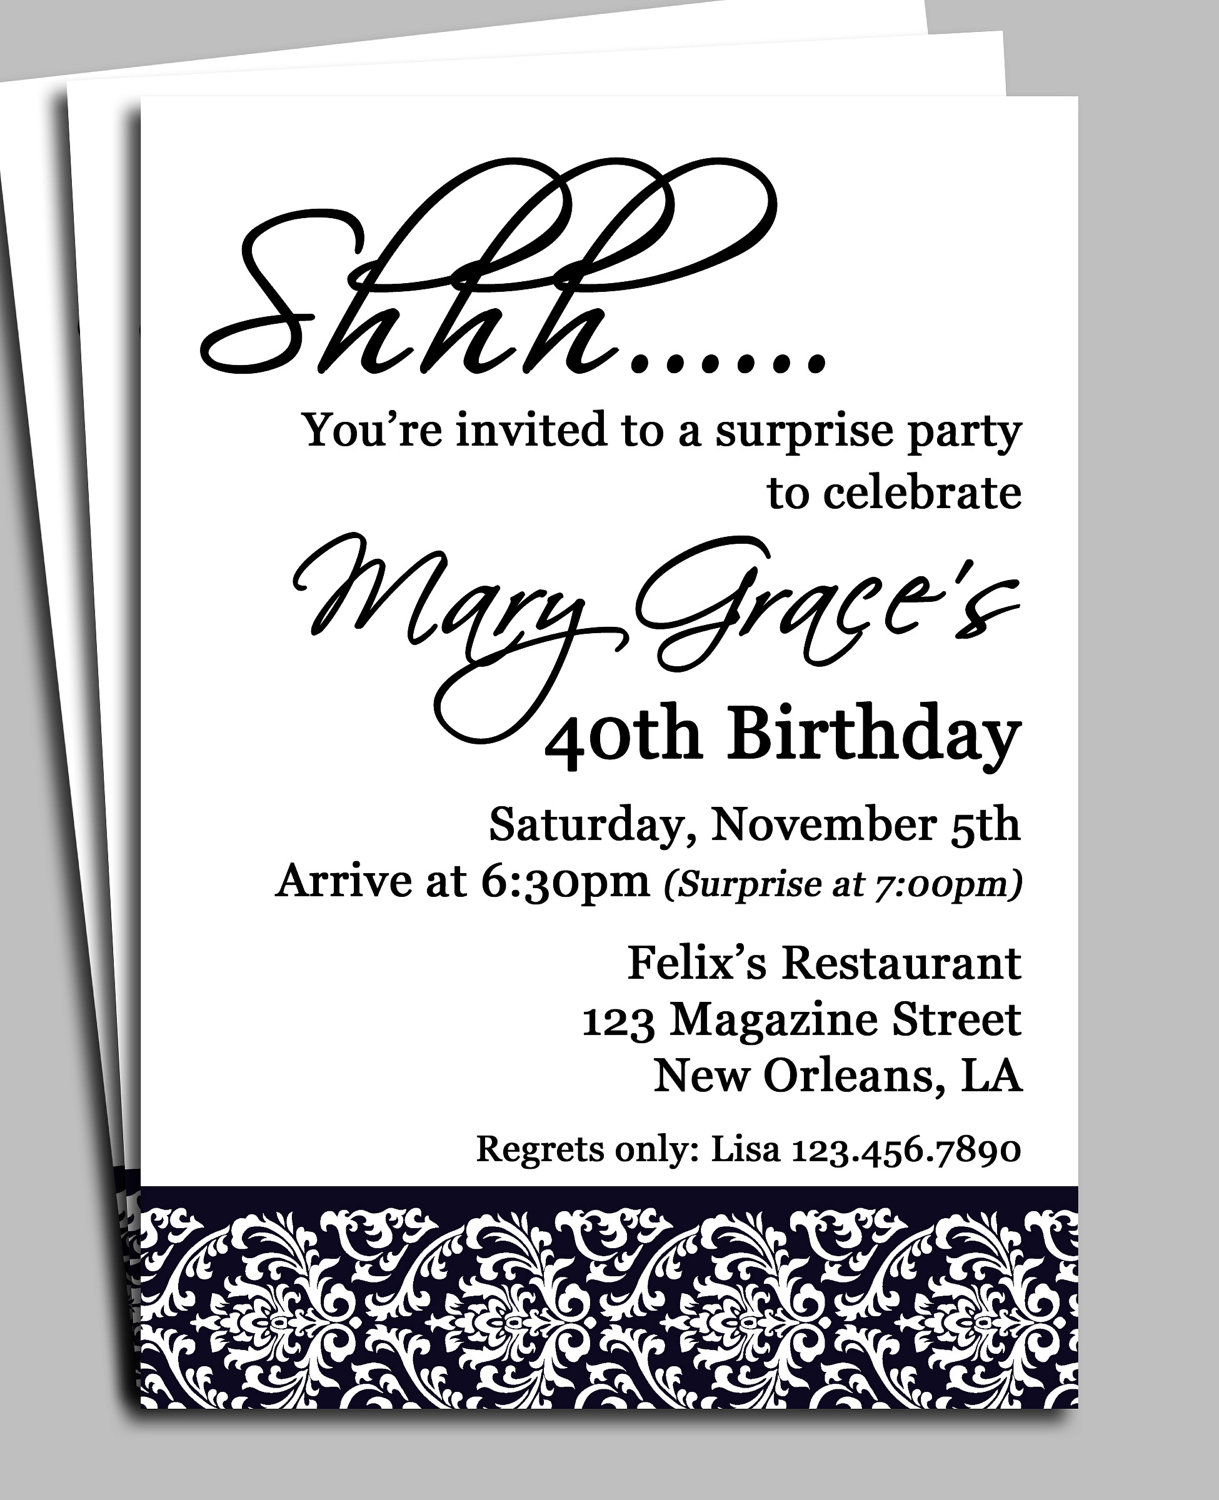 55th birthday invitation template ; stunning-40th-birthday-invitation-wording-some-nice-looking-Birthday-invitation-free-to-use-9